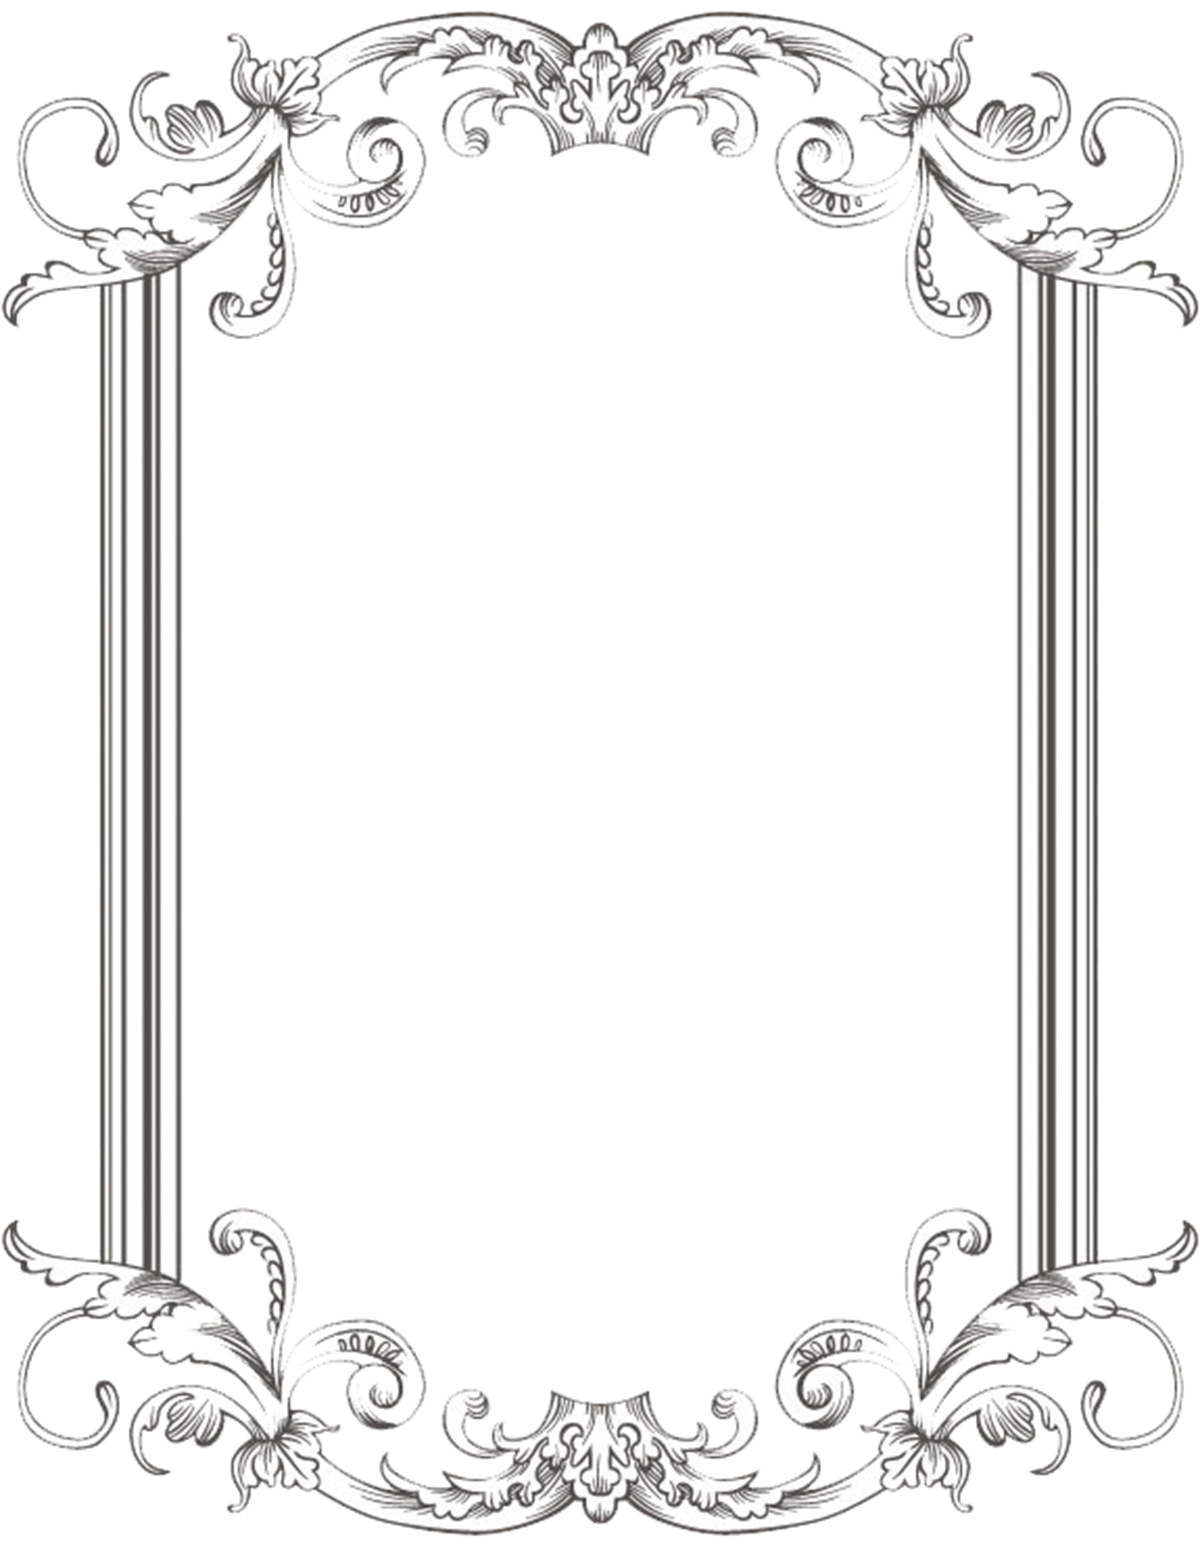 15 Black Vintage Frame Vector PNG Images - Black and White ...